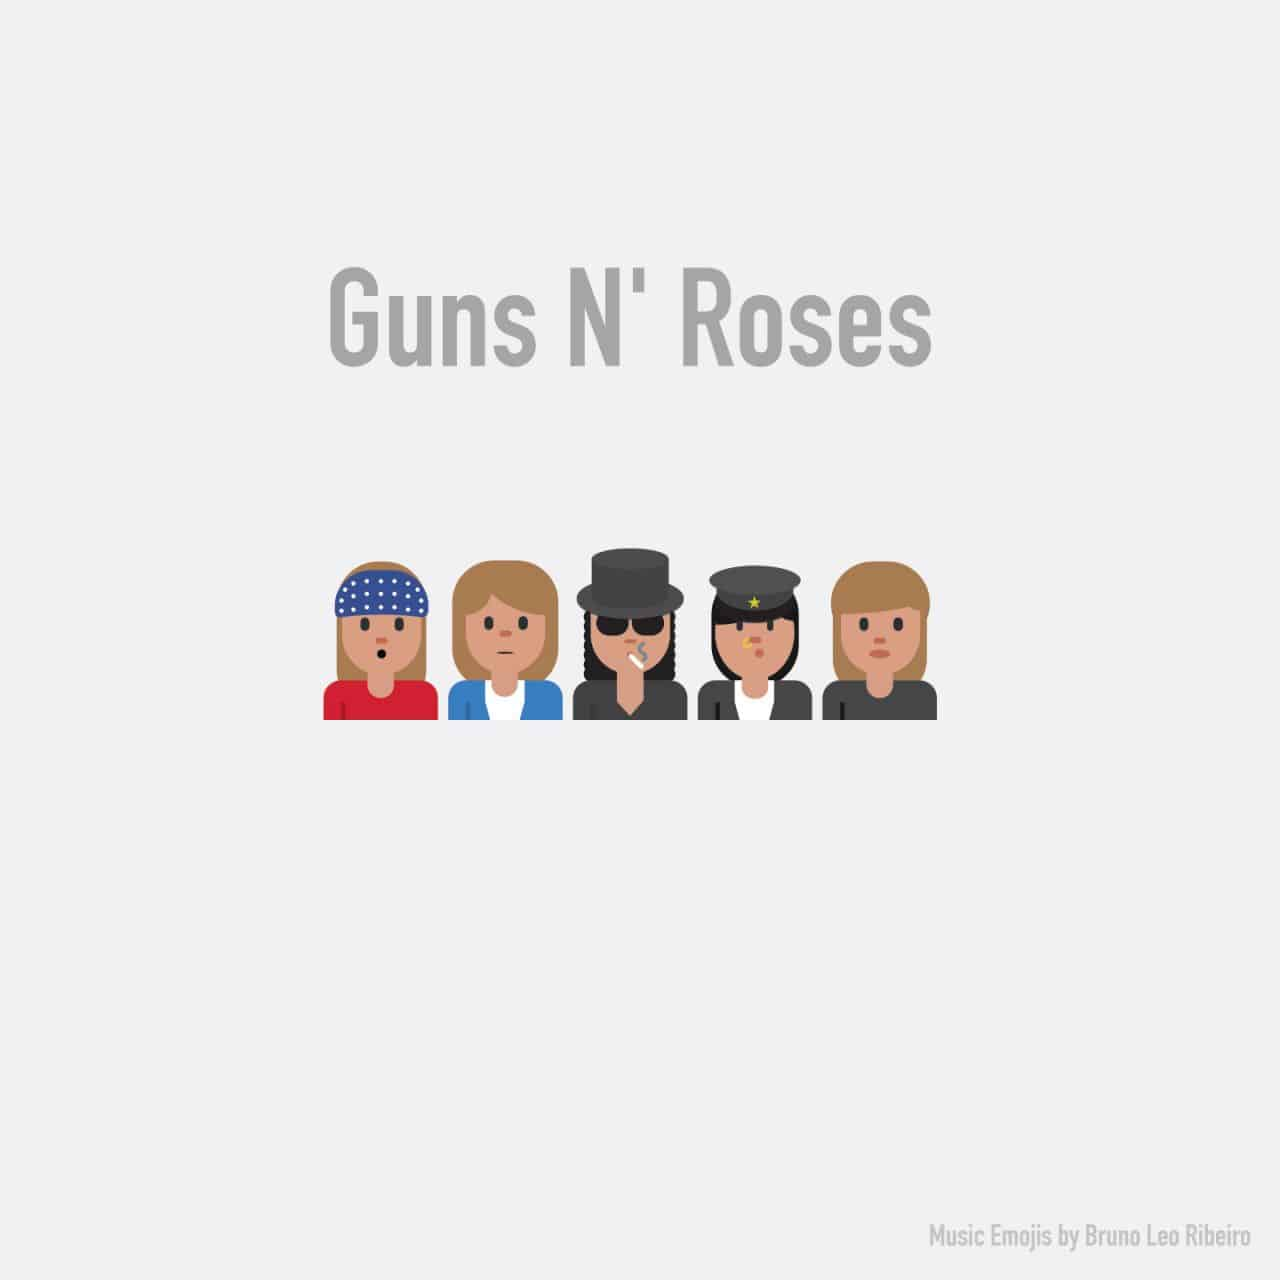 Emojis of popular bands and musicians | Dravens Tales from